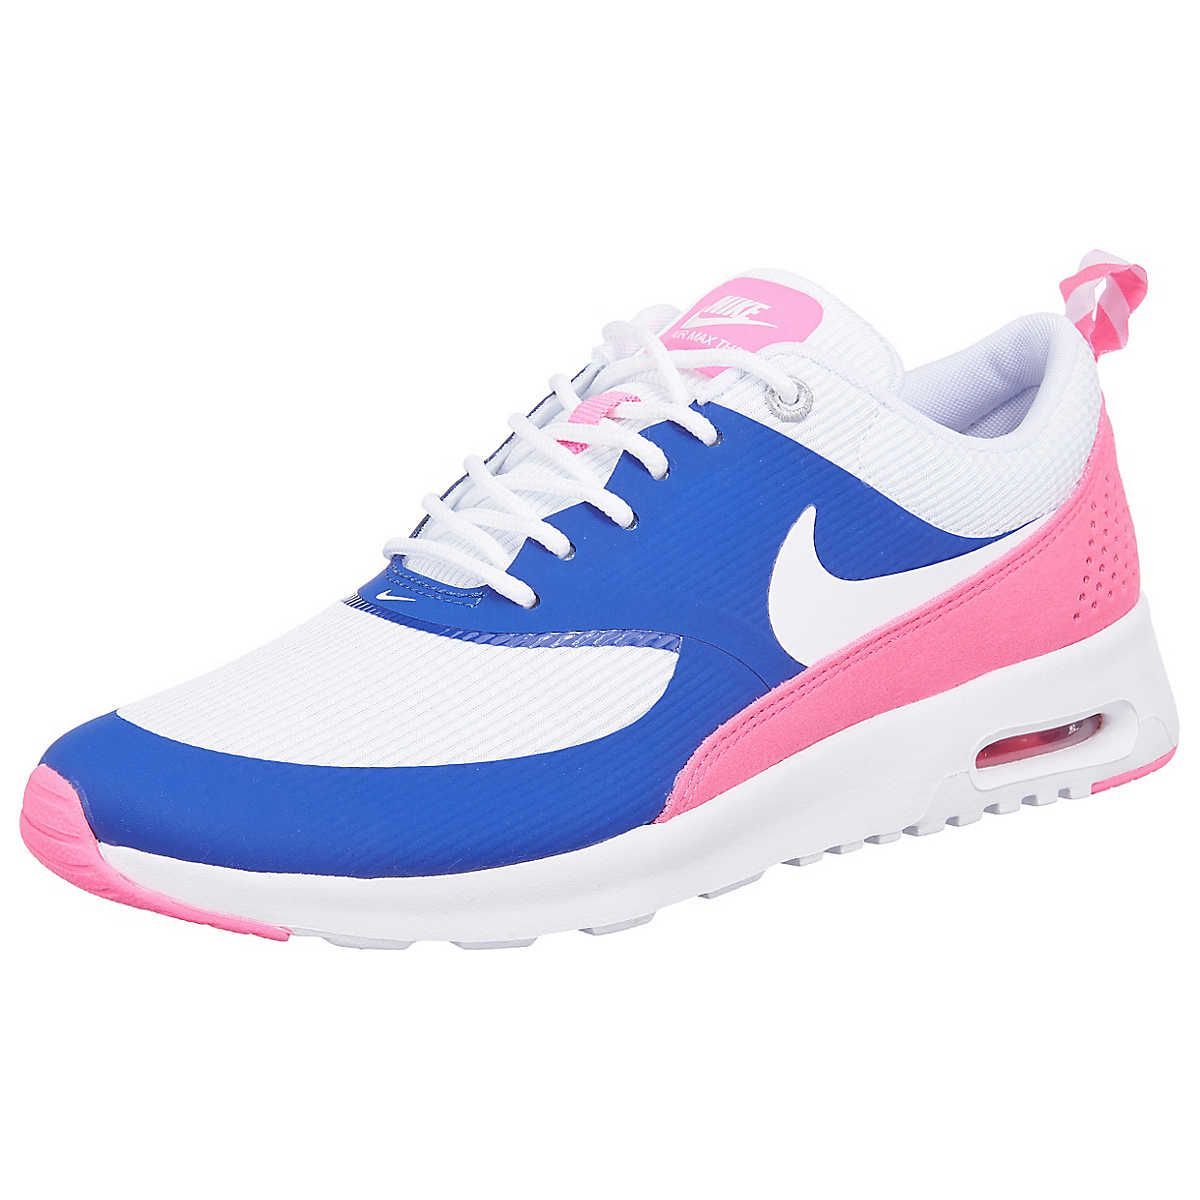 air max damen günstig